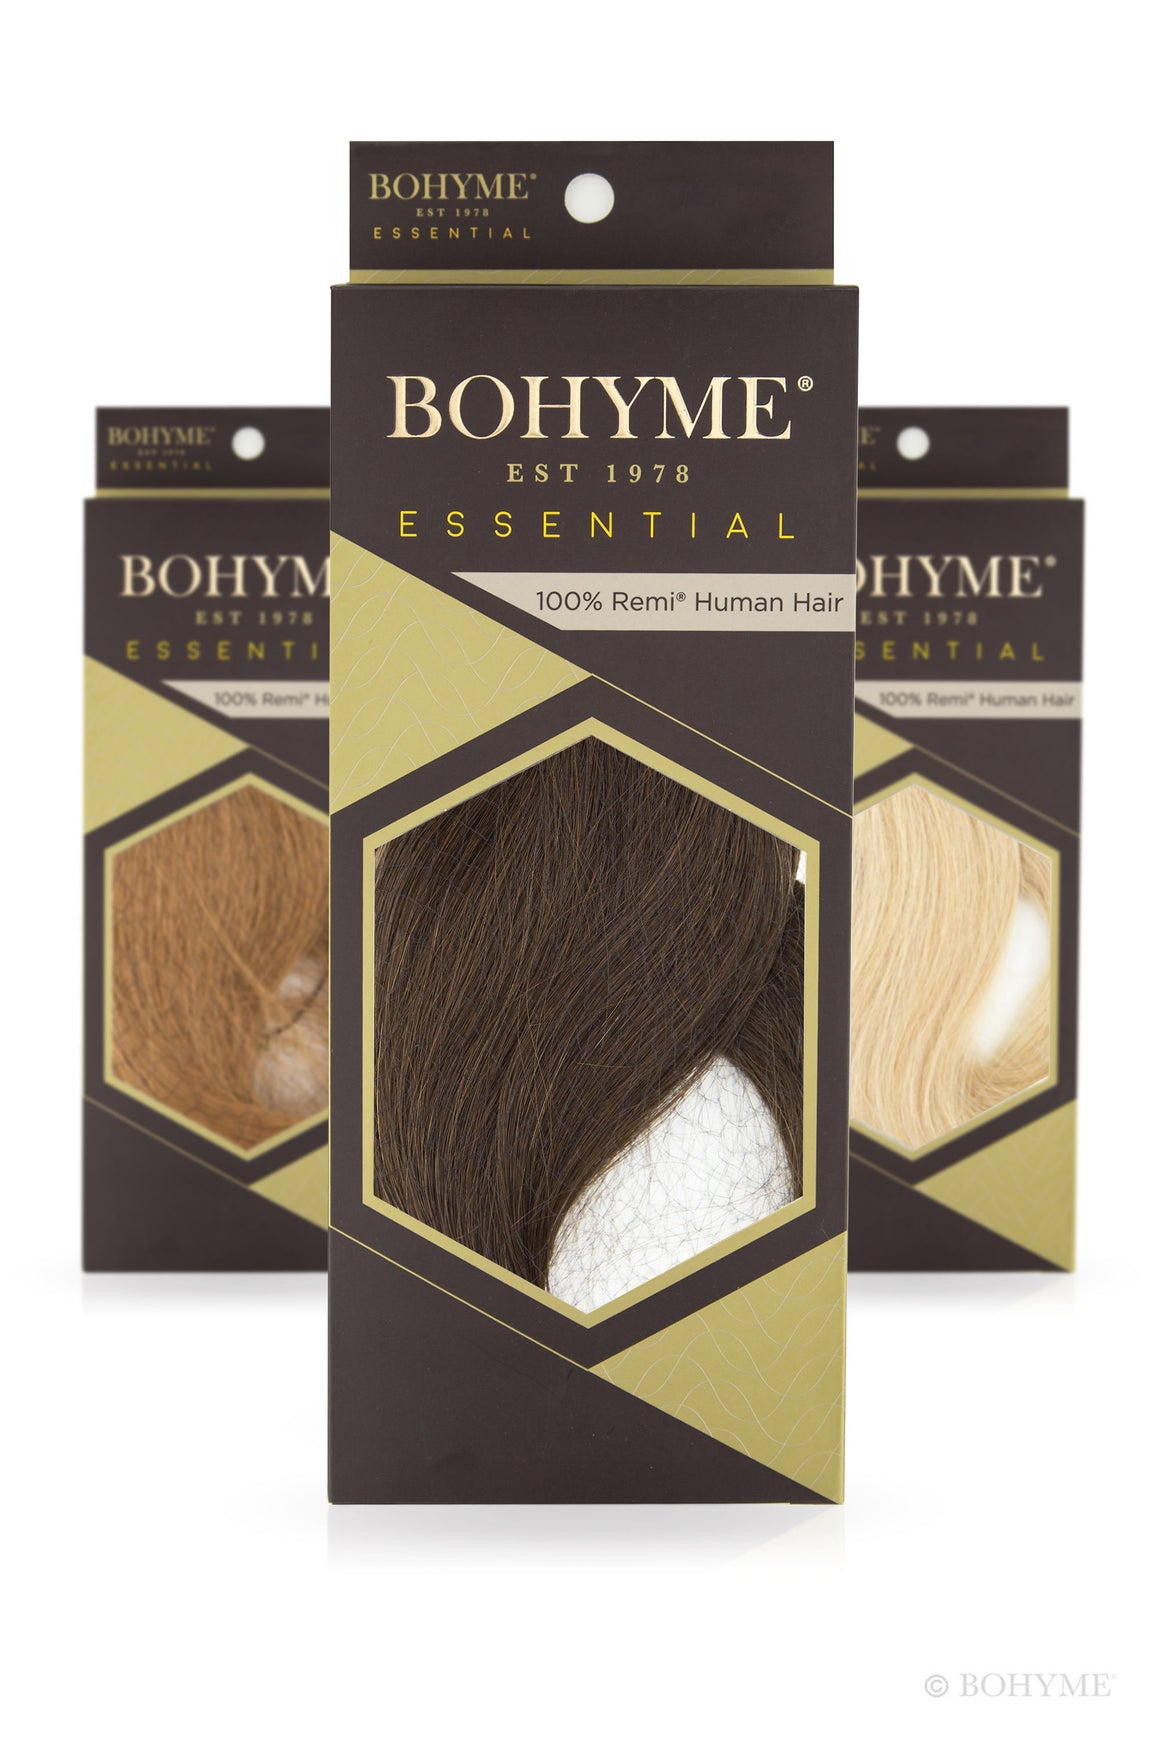 "Bohyme Essential Halo V2 18"" Extensions"